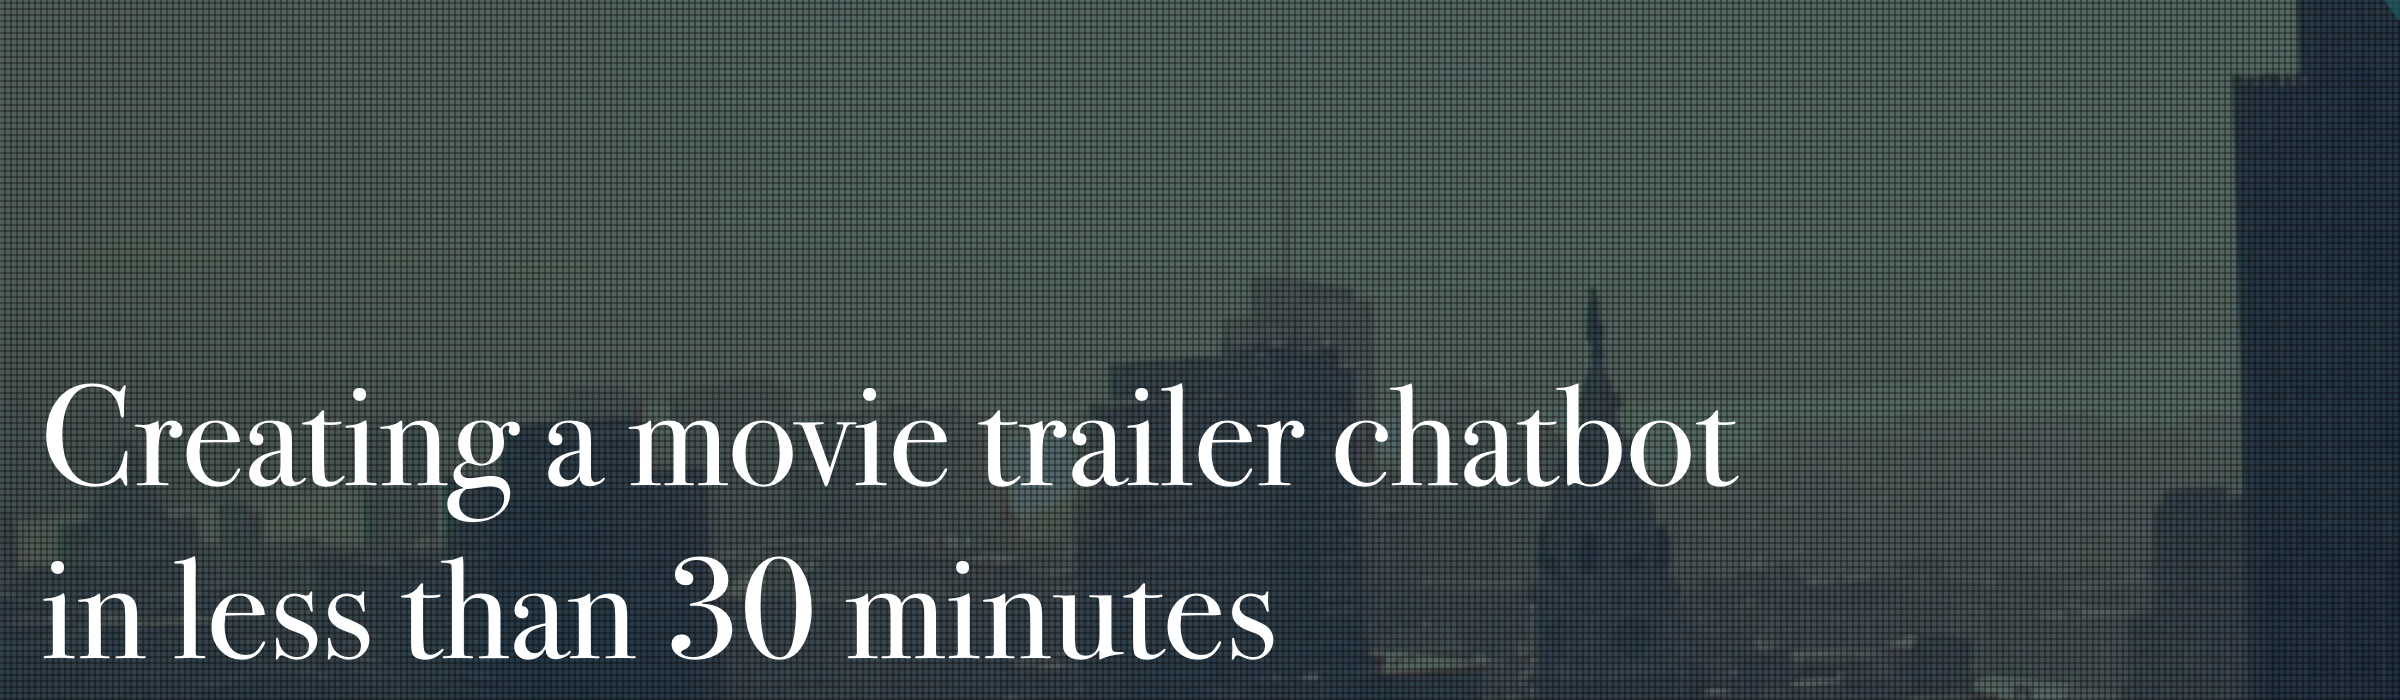 Creating a Movie Trailer Chatbot in Less Than 30 Minutes